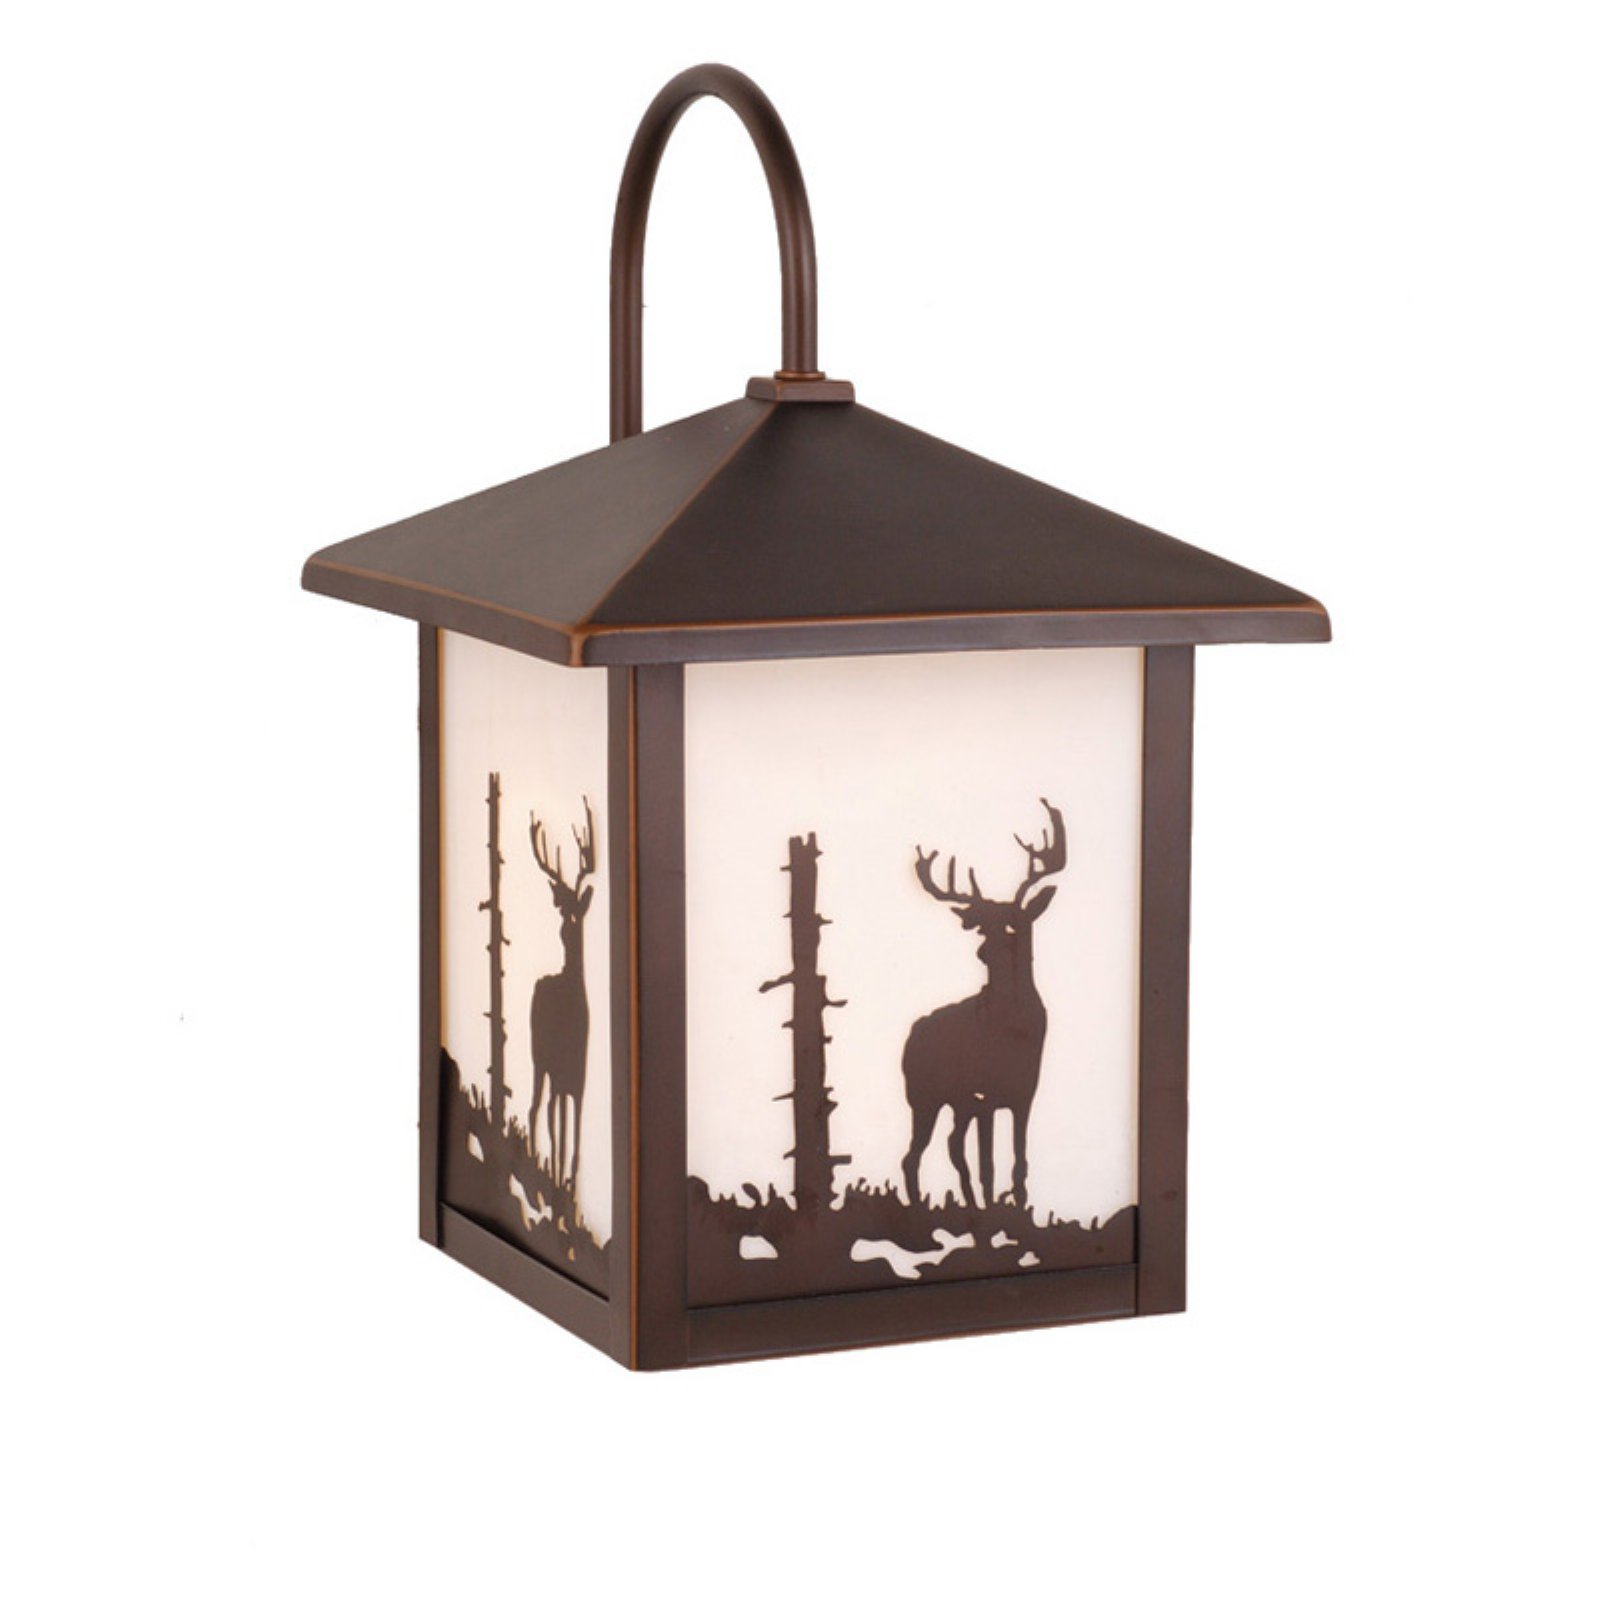 Vaxcel Bryce Outdoor Wall Light - 8W in. Burnished Bronze